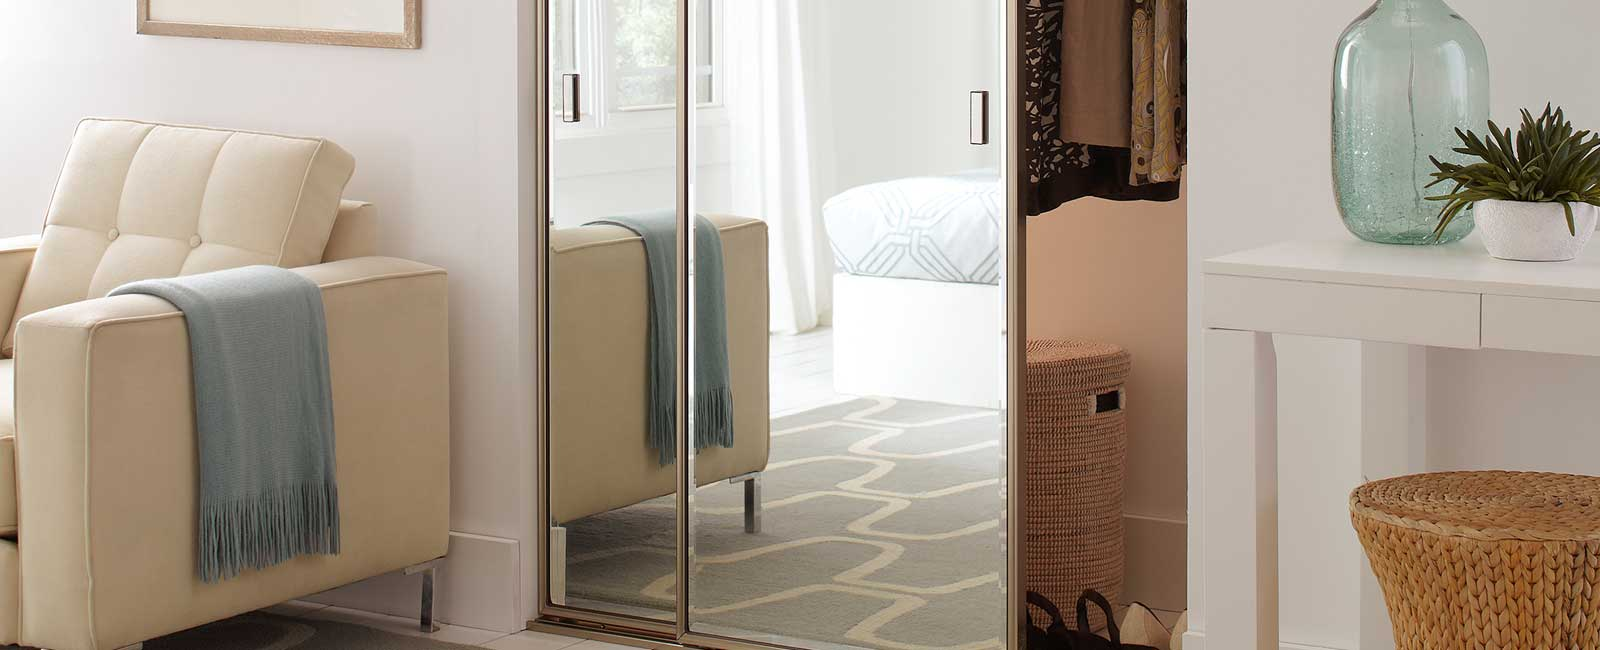 Custom Closet Mirrored Doors From